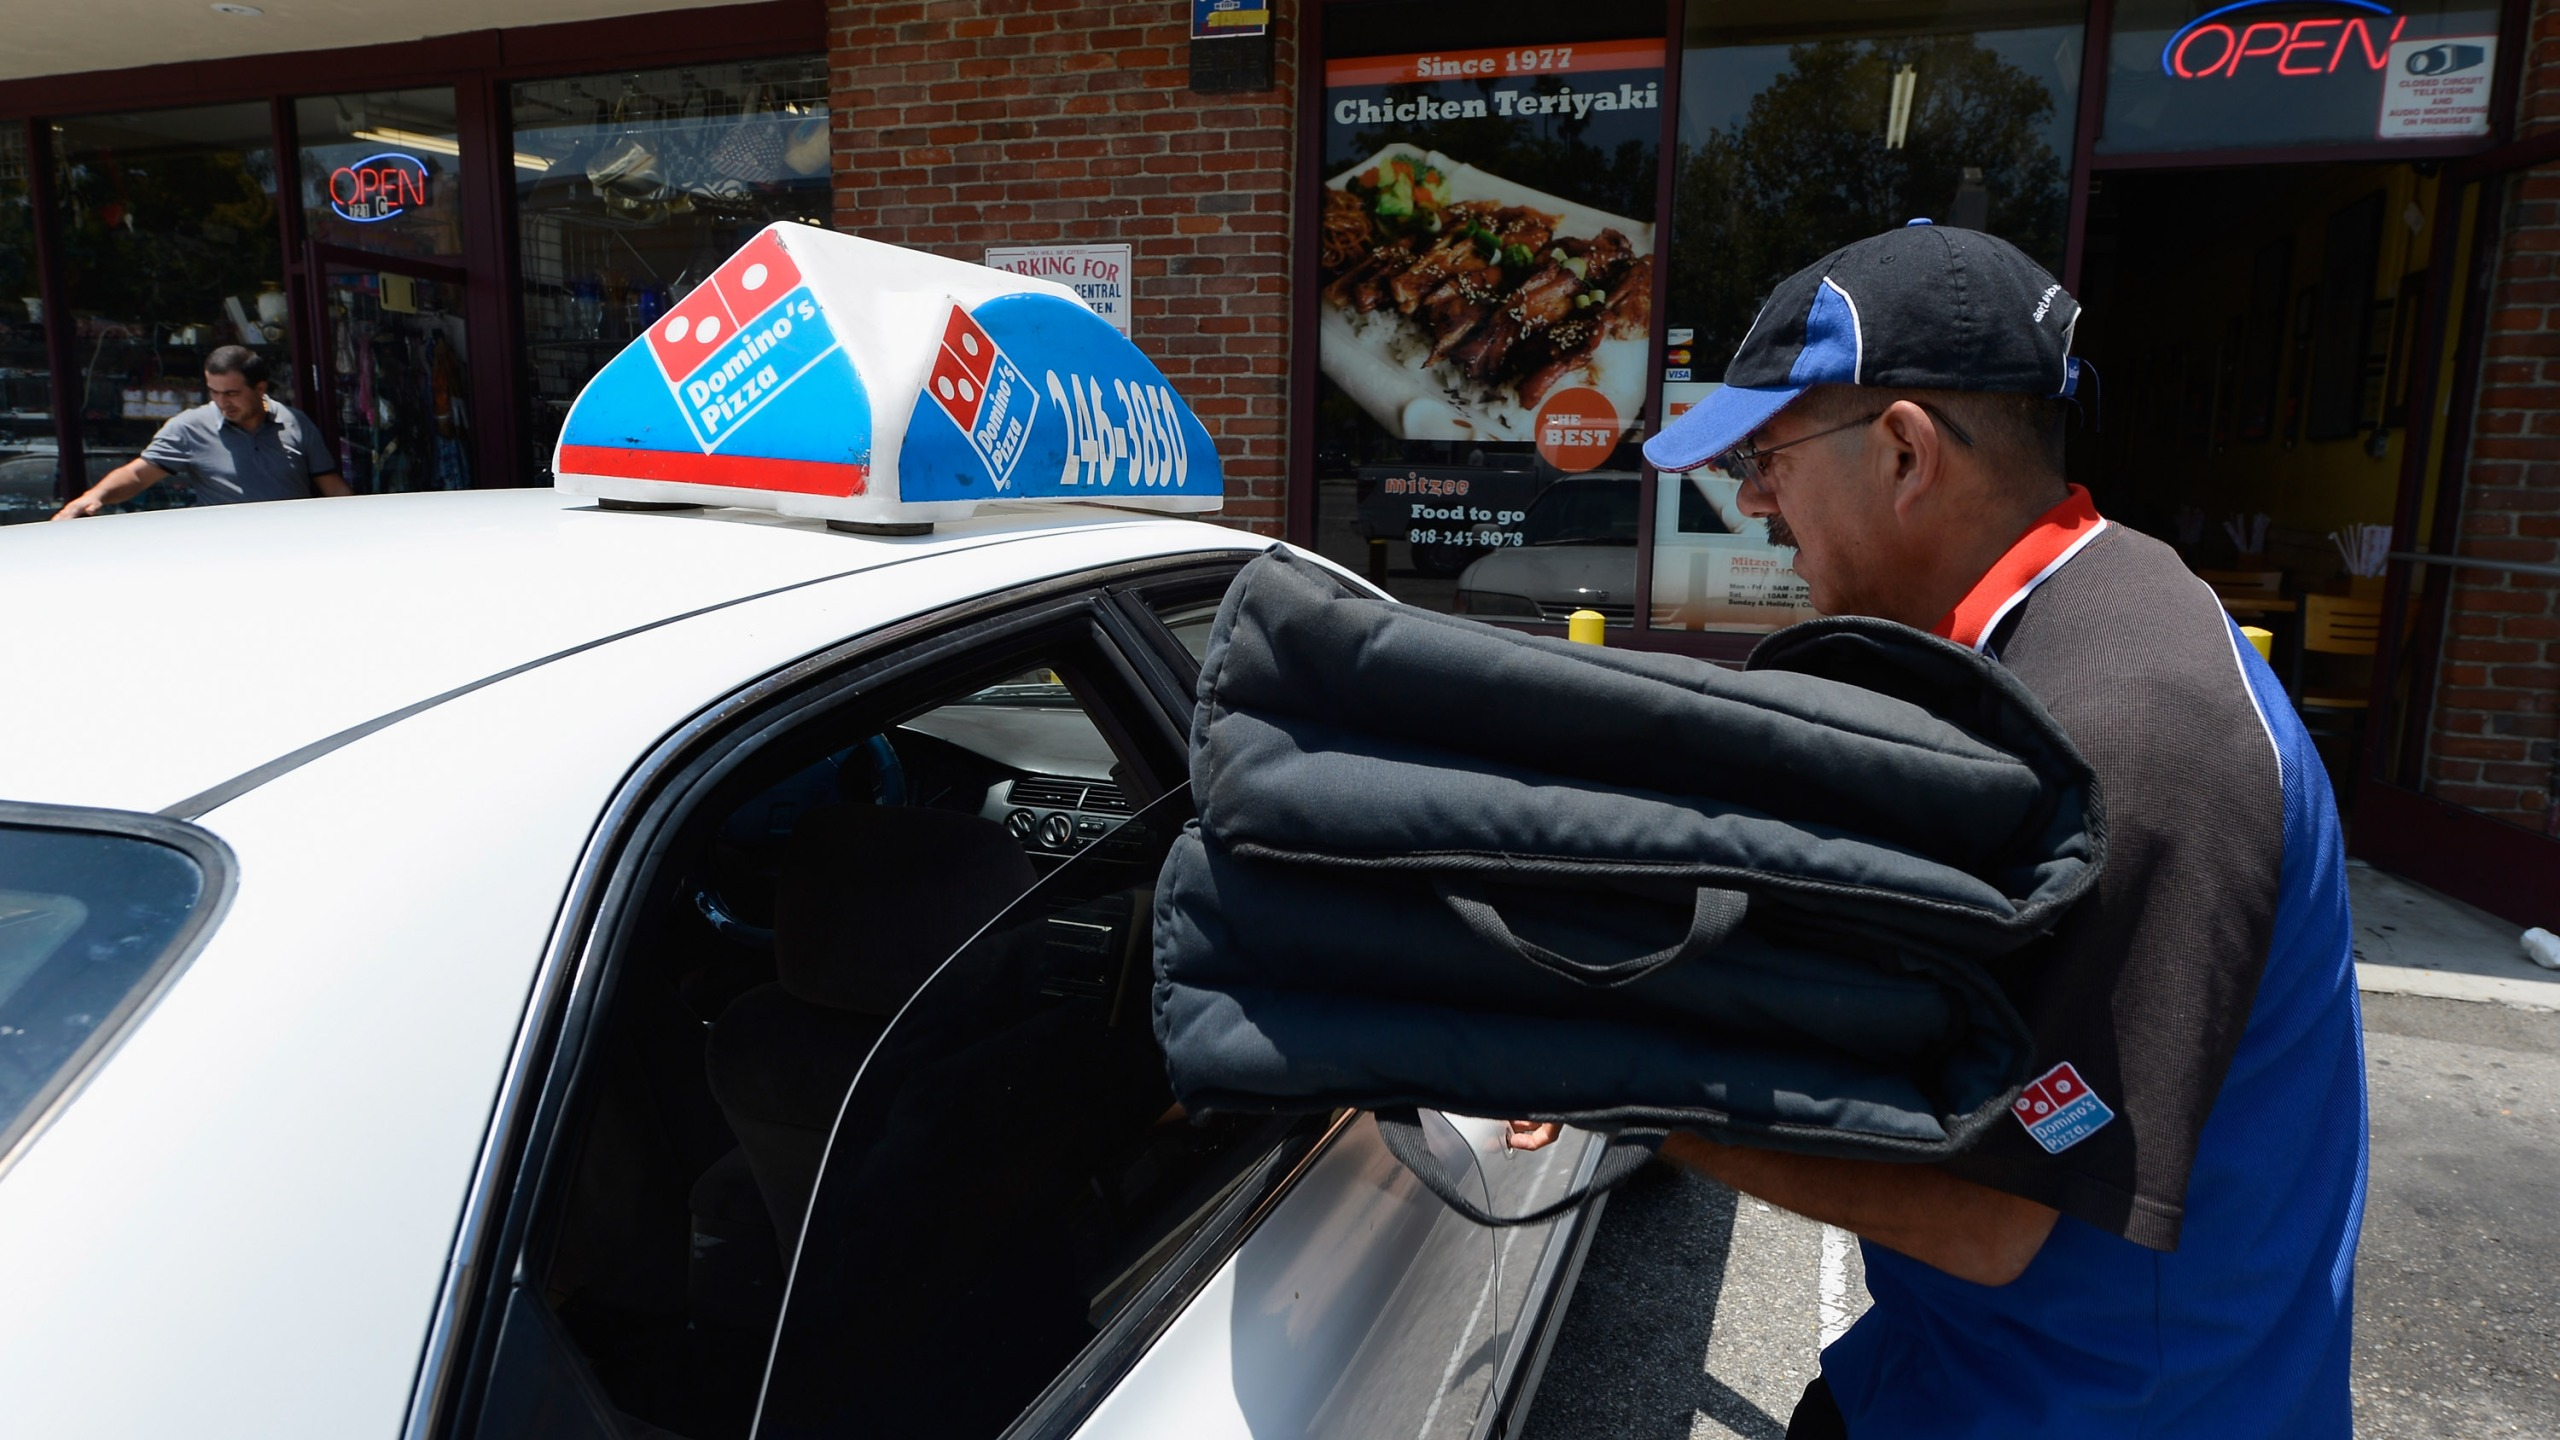 A Domino's Pizza delivery man sets out for delivery on June 21, 2012 in Glendale, California. (Kevork Djansezian/Getty Images)